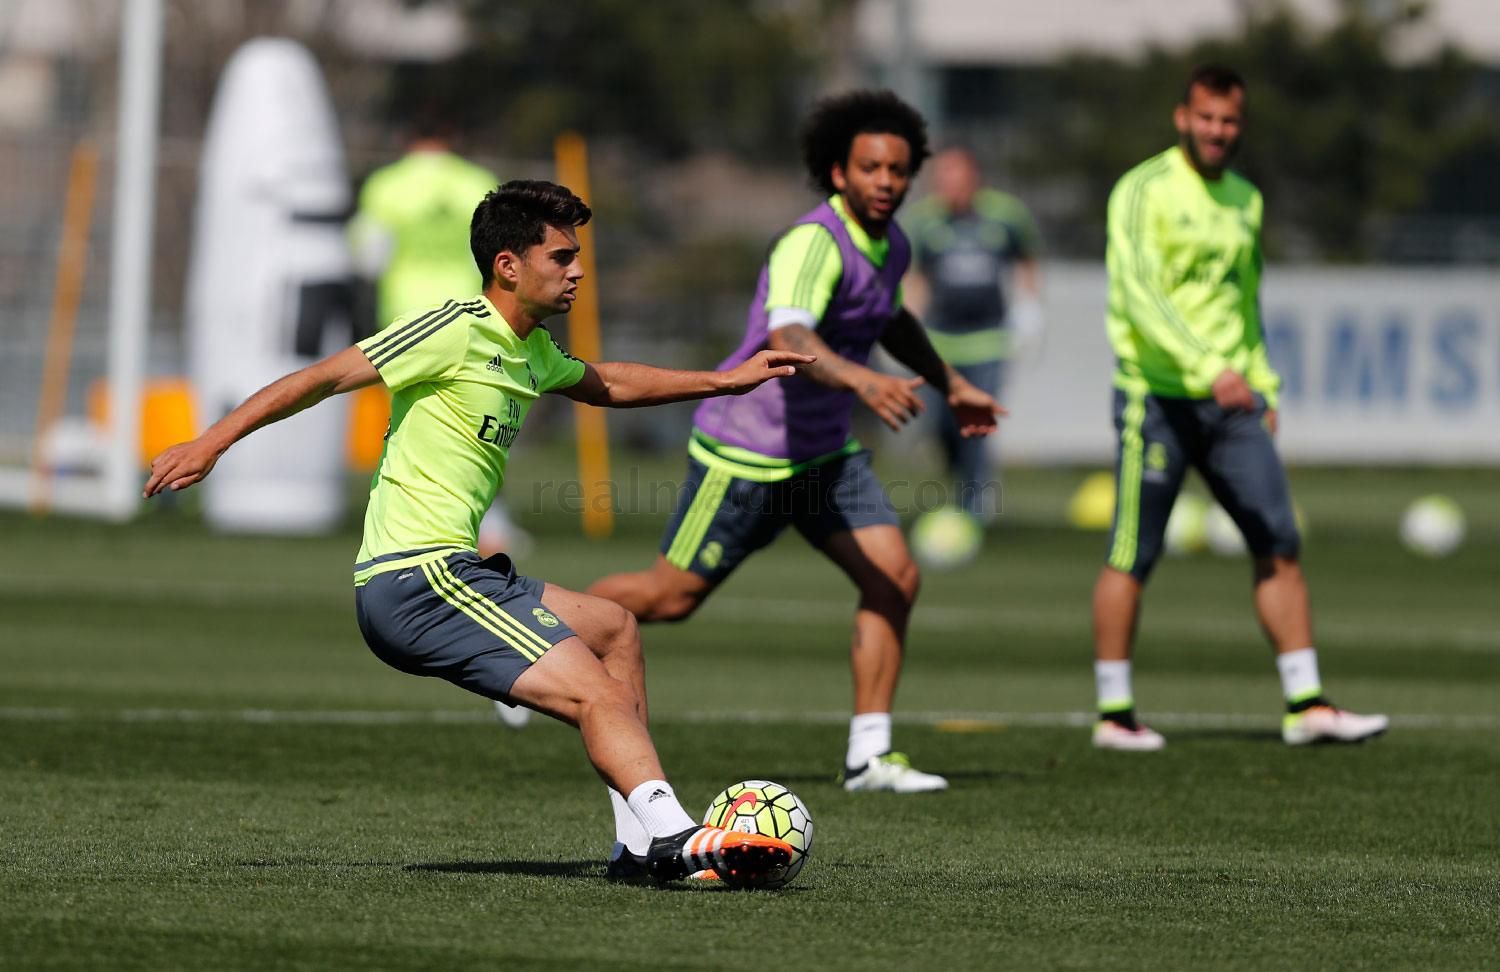 Real Madrid - Entrenamiento del Real Madrid - 30-03-2016